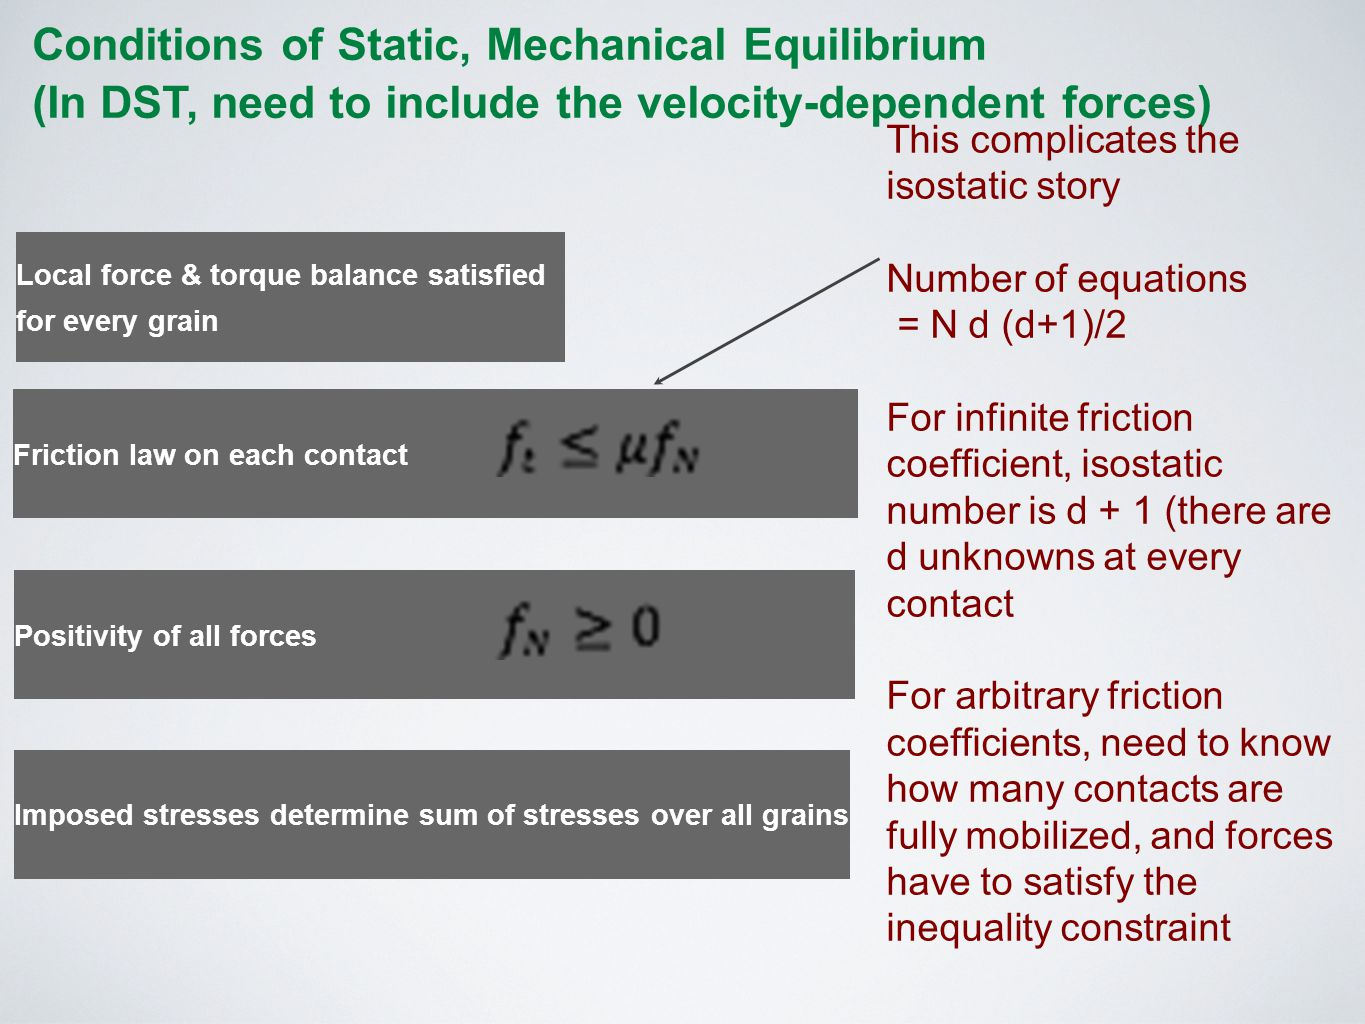 Conditions of Static, Mechanical Equilibrium